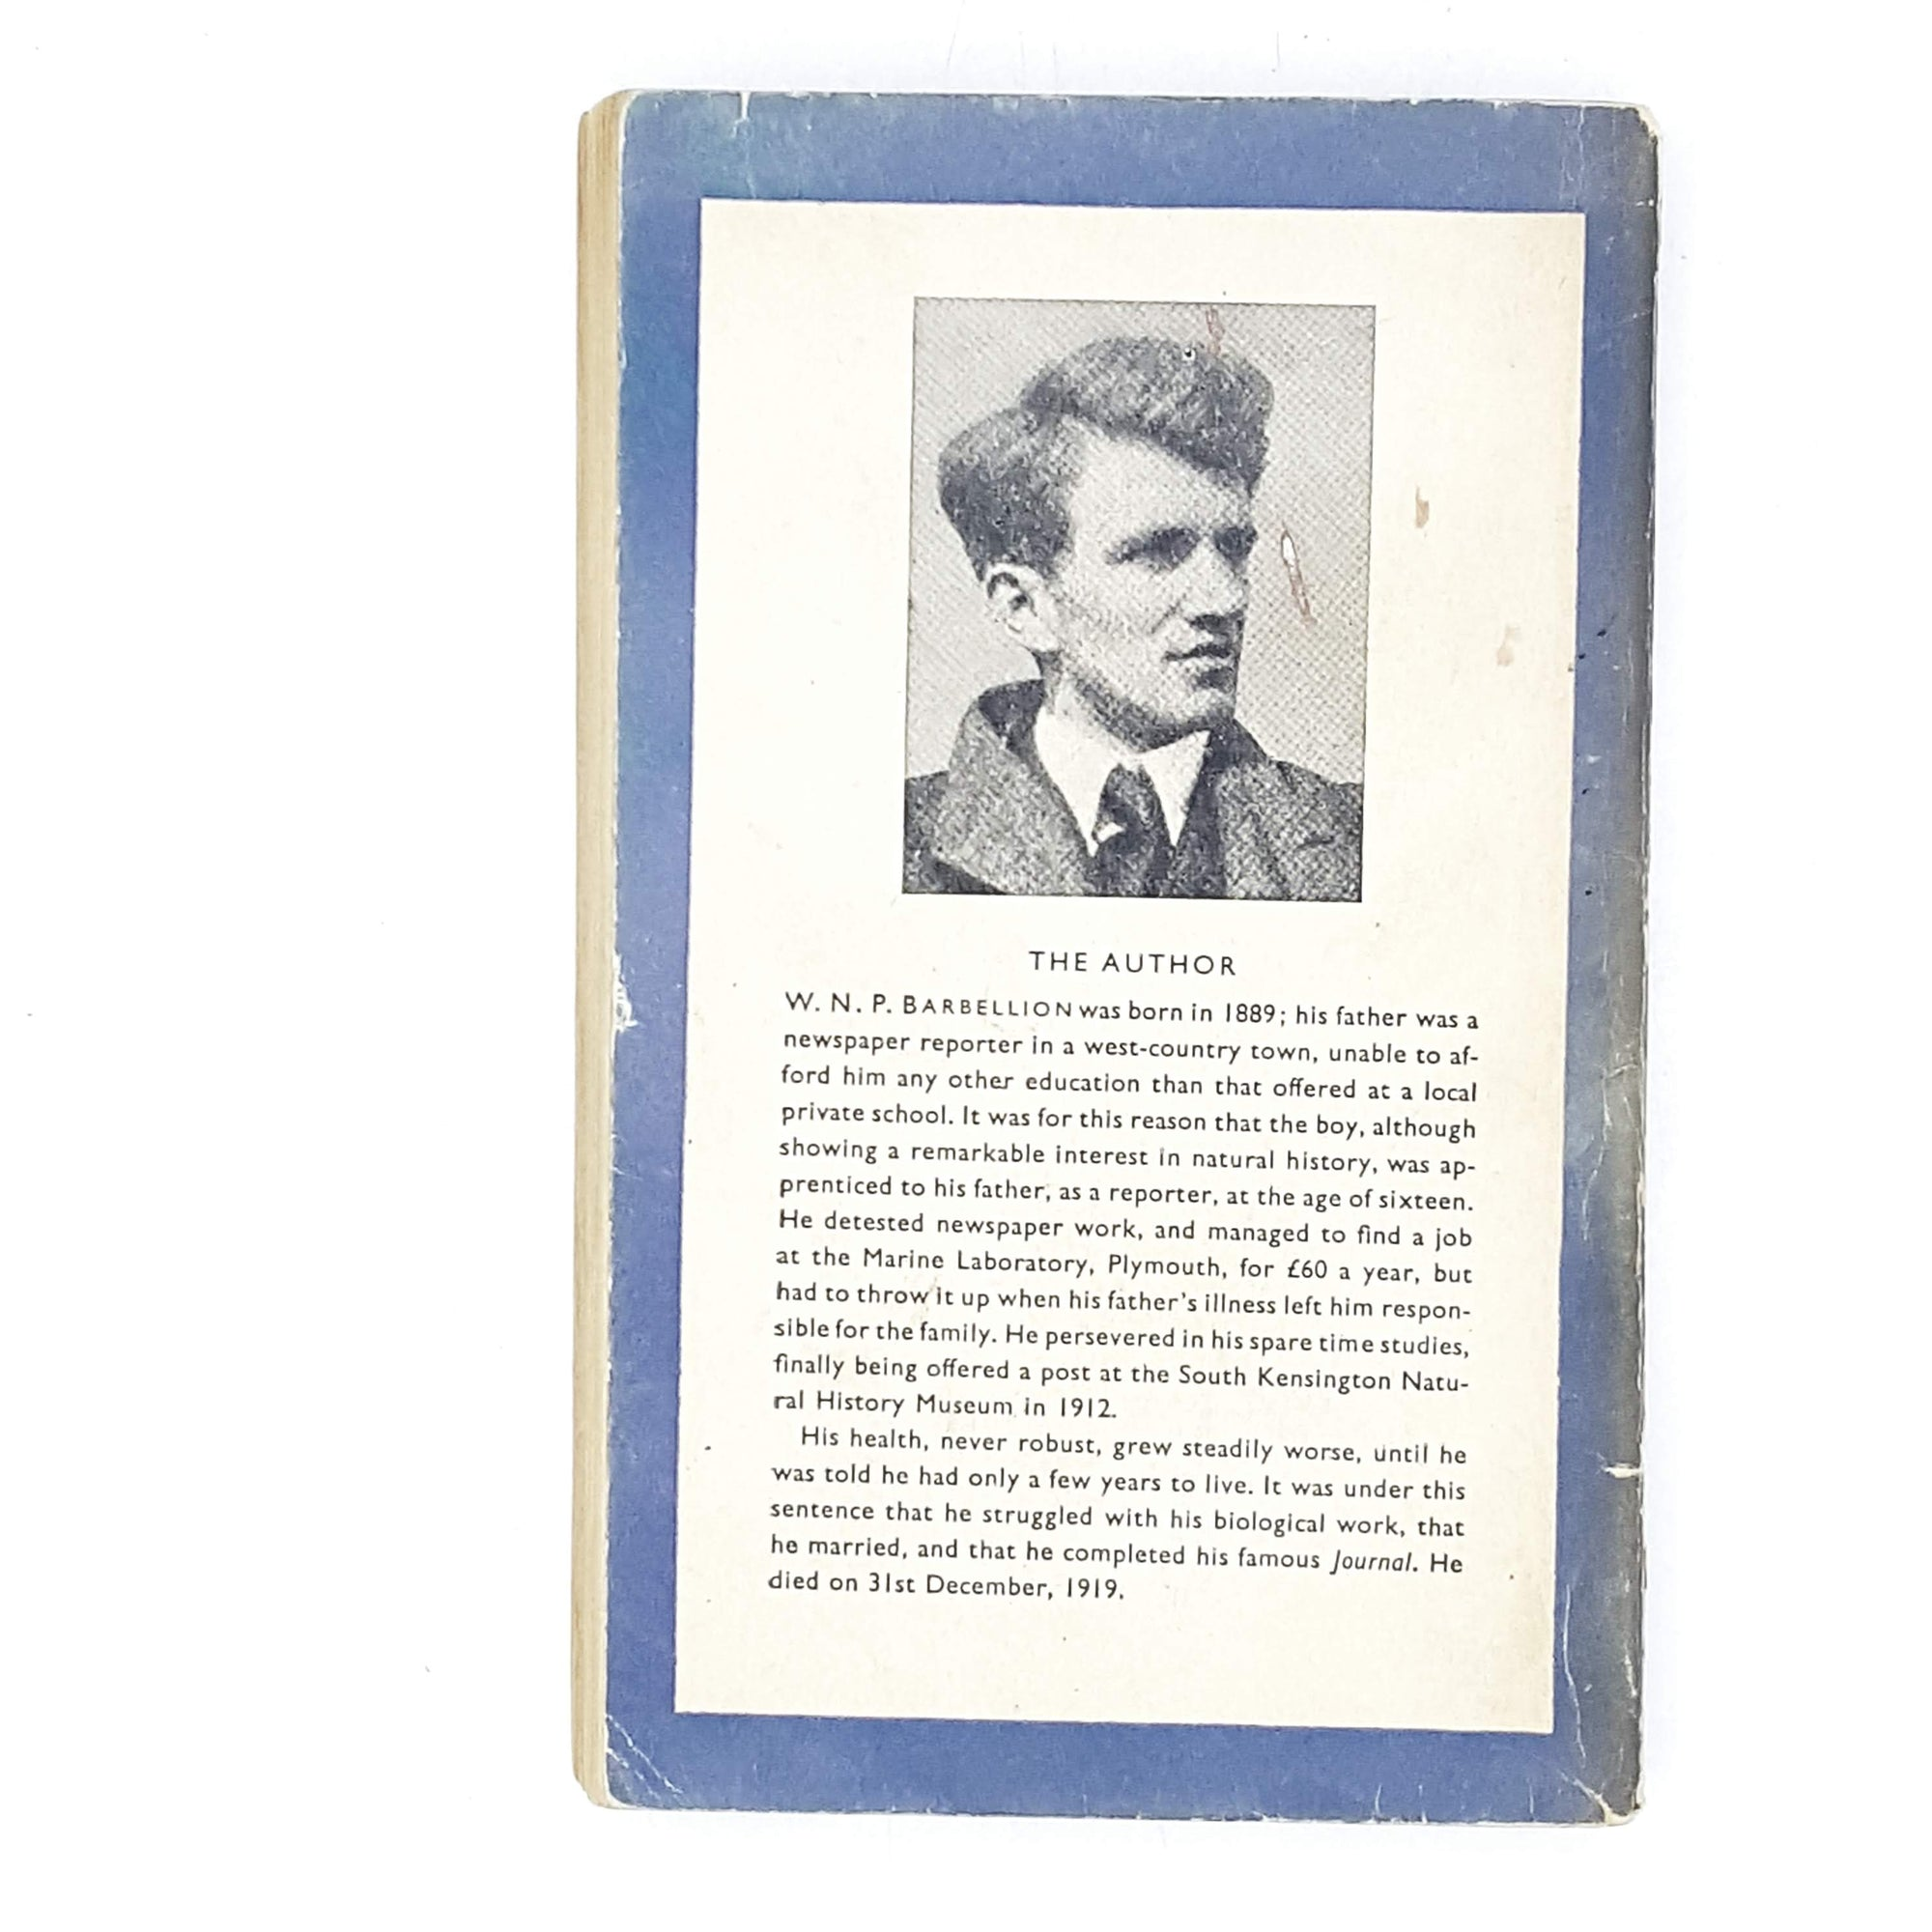 vintage-penguin-the-journal-of-a-disappointed-man-by-w.-n.-p.-barbellion-1948-blue-country-house-library